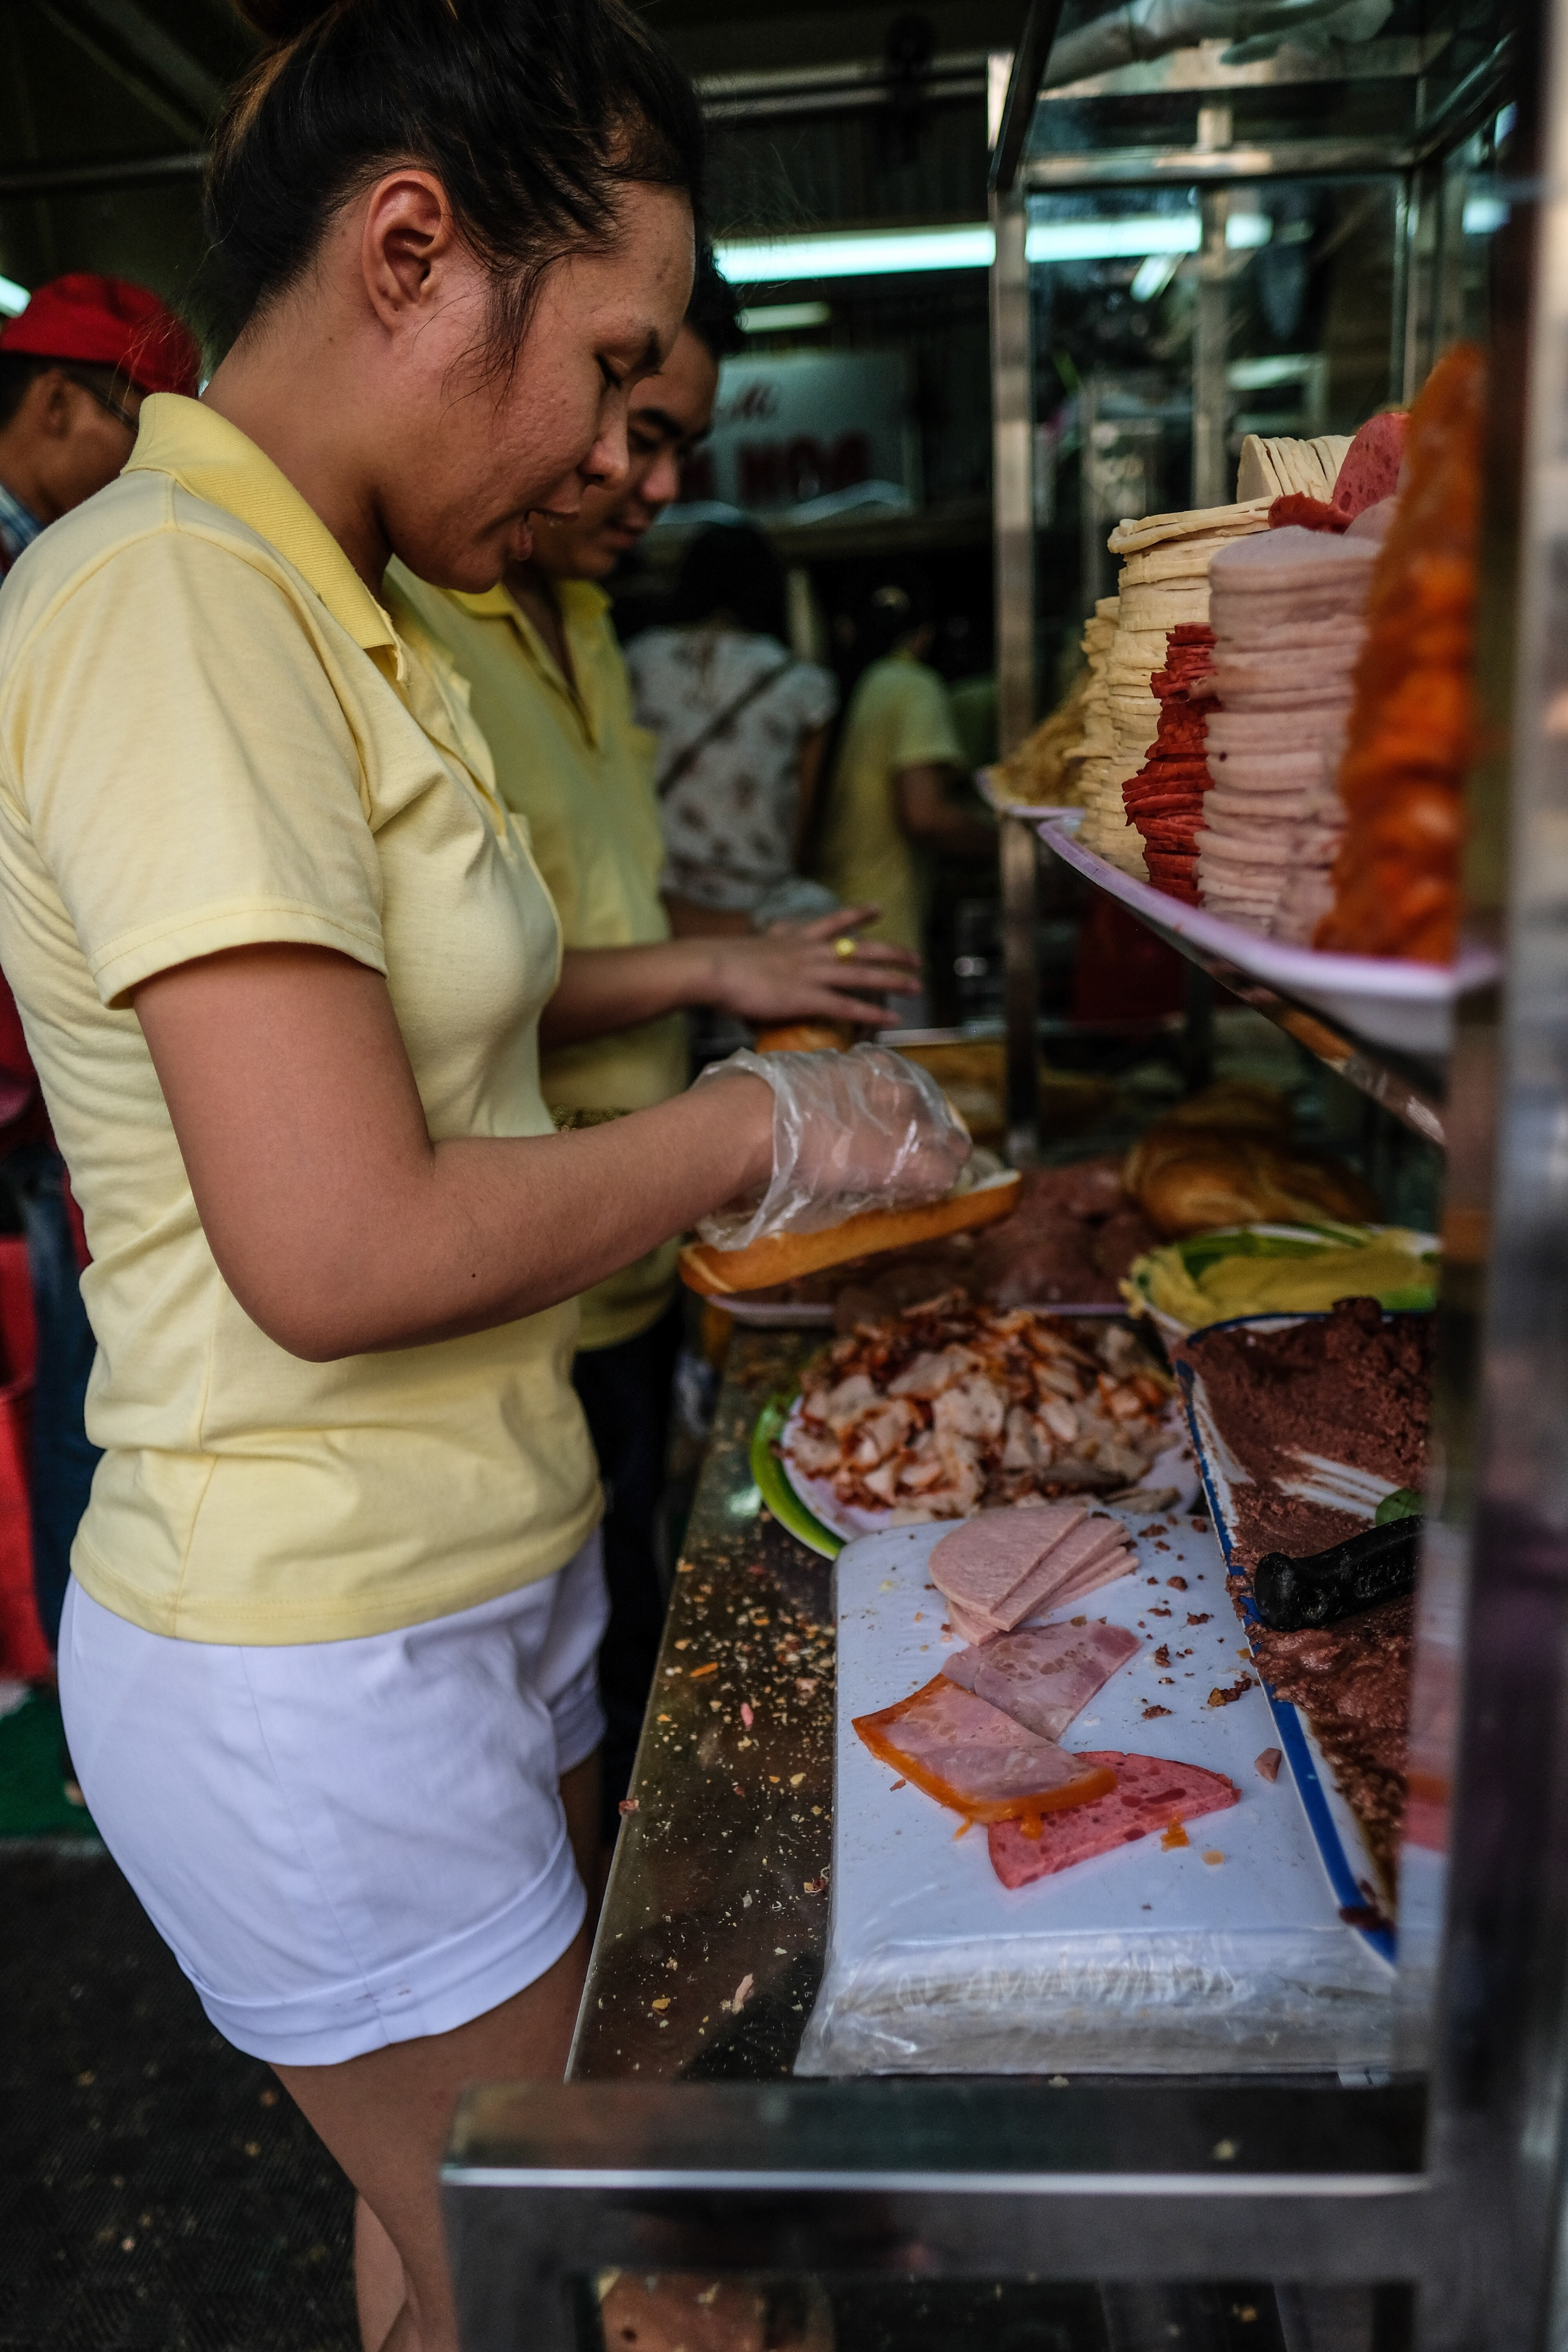 Preparing Banh Mi at the tiny but famous Banh Mi Huynh Hoa on Le Thi Rieng. It is a term for all sorts of bread, but is also used for the typical Vietnamese baguette with a variety of meats, a spread of pate, herbs and chillies.